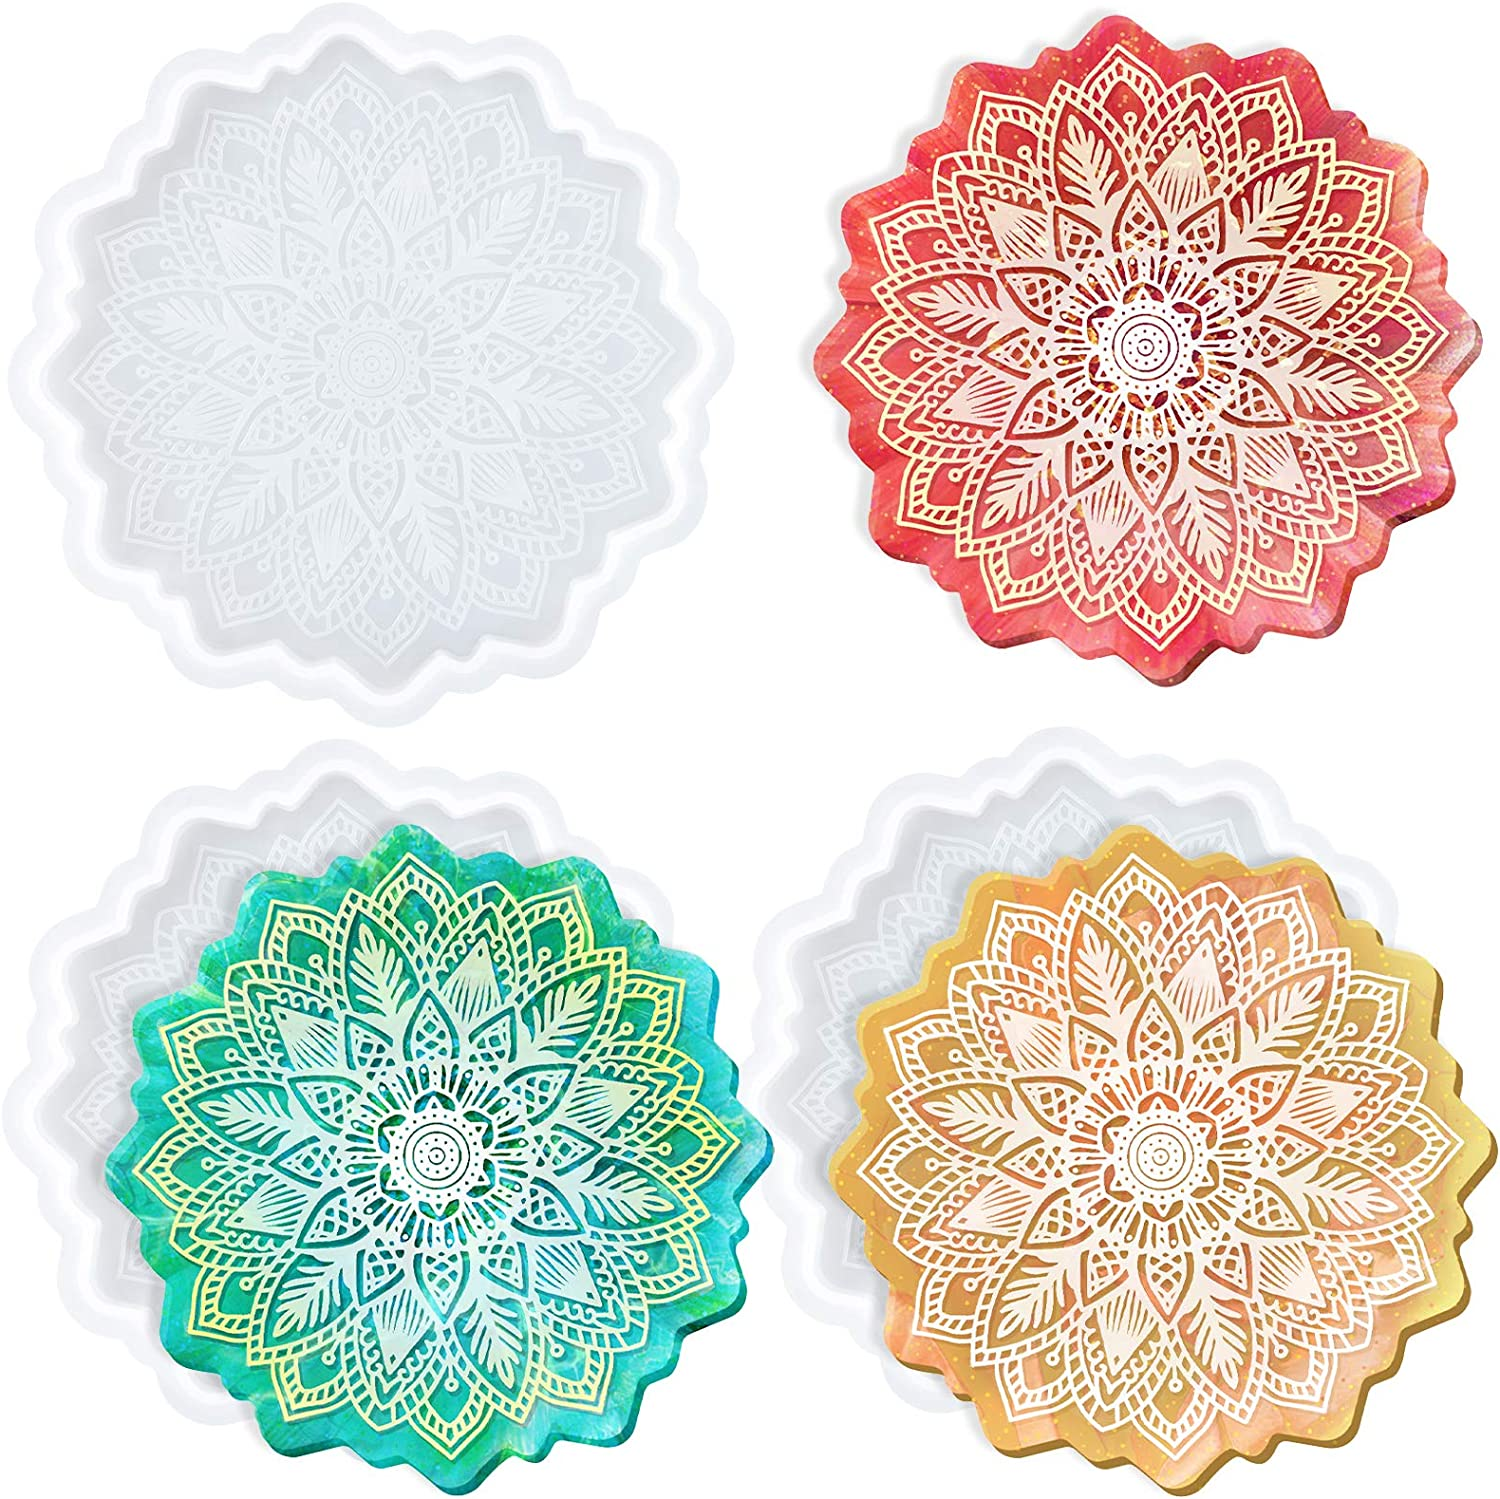 MIKIMIQI Mandala Flowers Large special price !! Coaster Mold for Don't miss the campaign 3 Sun Flow Pack Resin